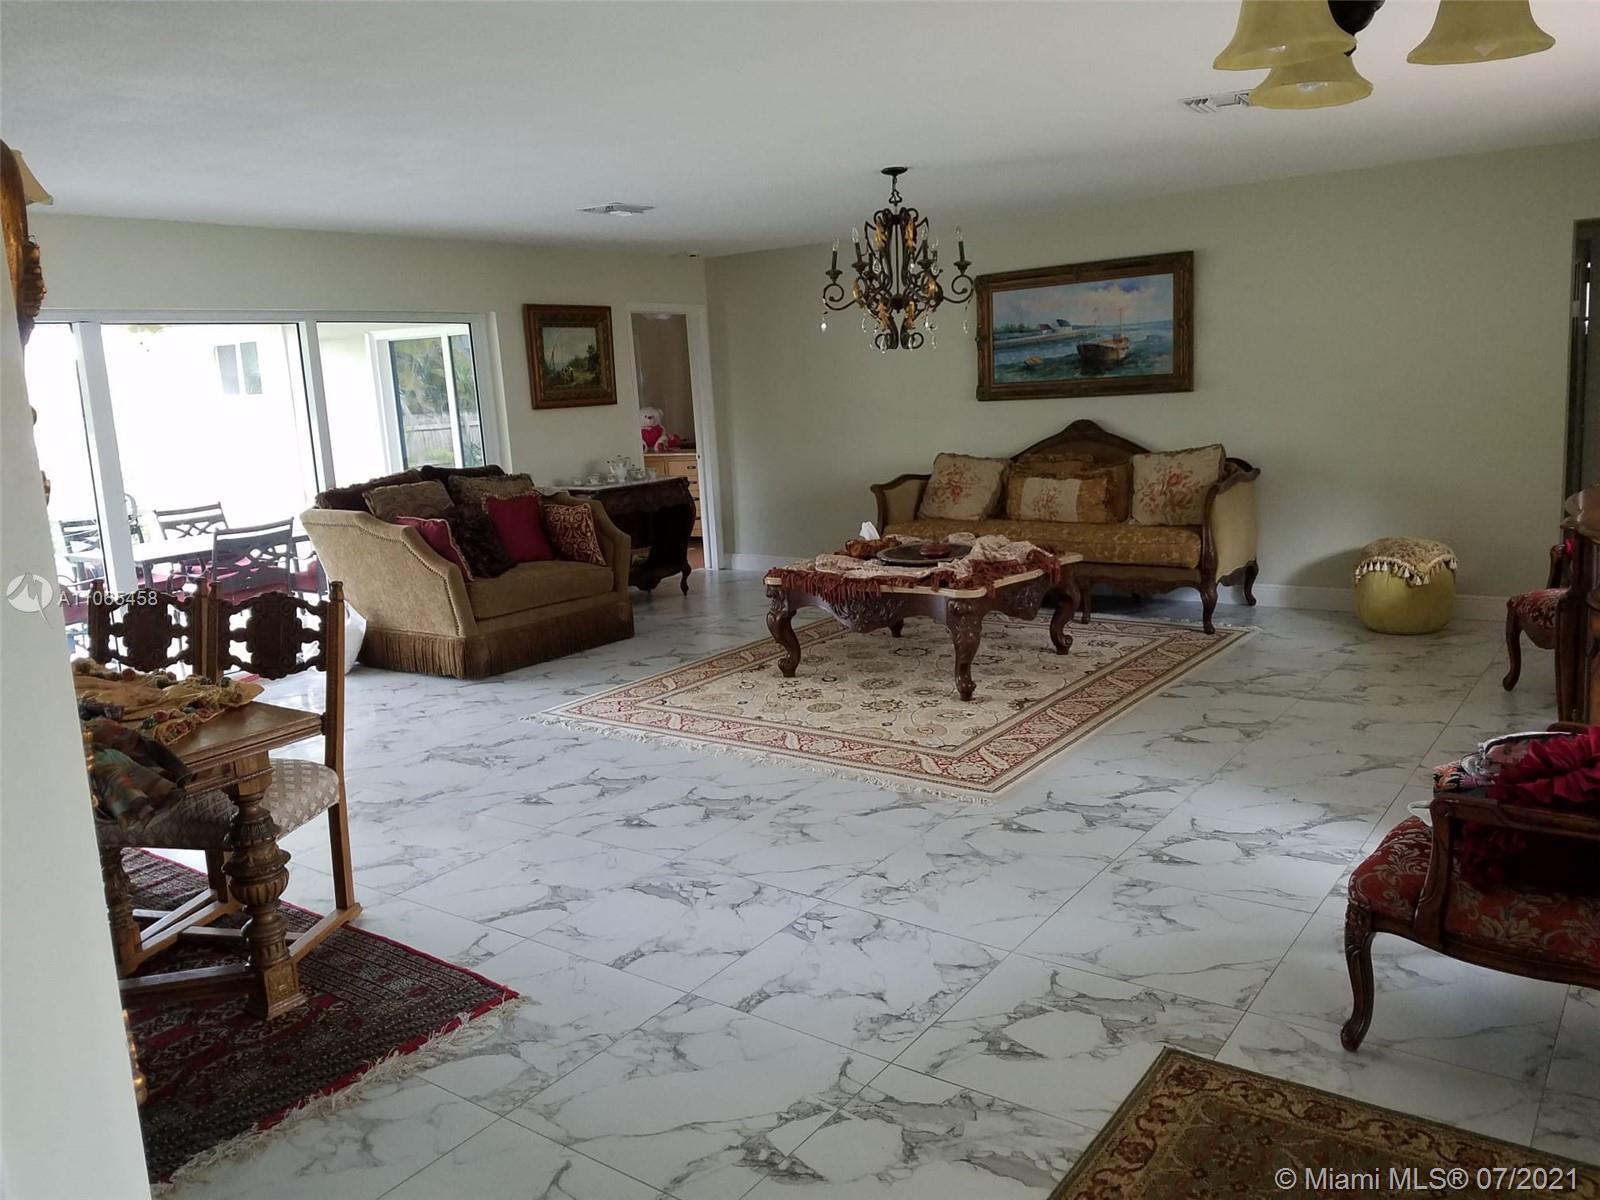 SURROUNDED BY MILLION DOLLAR HOMES ON THE 800 BLOCK OF WASHINGTON ST IN HOLLYWOOD LAKES THIS 3 BD/ 2